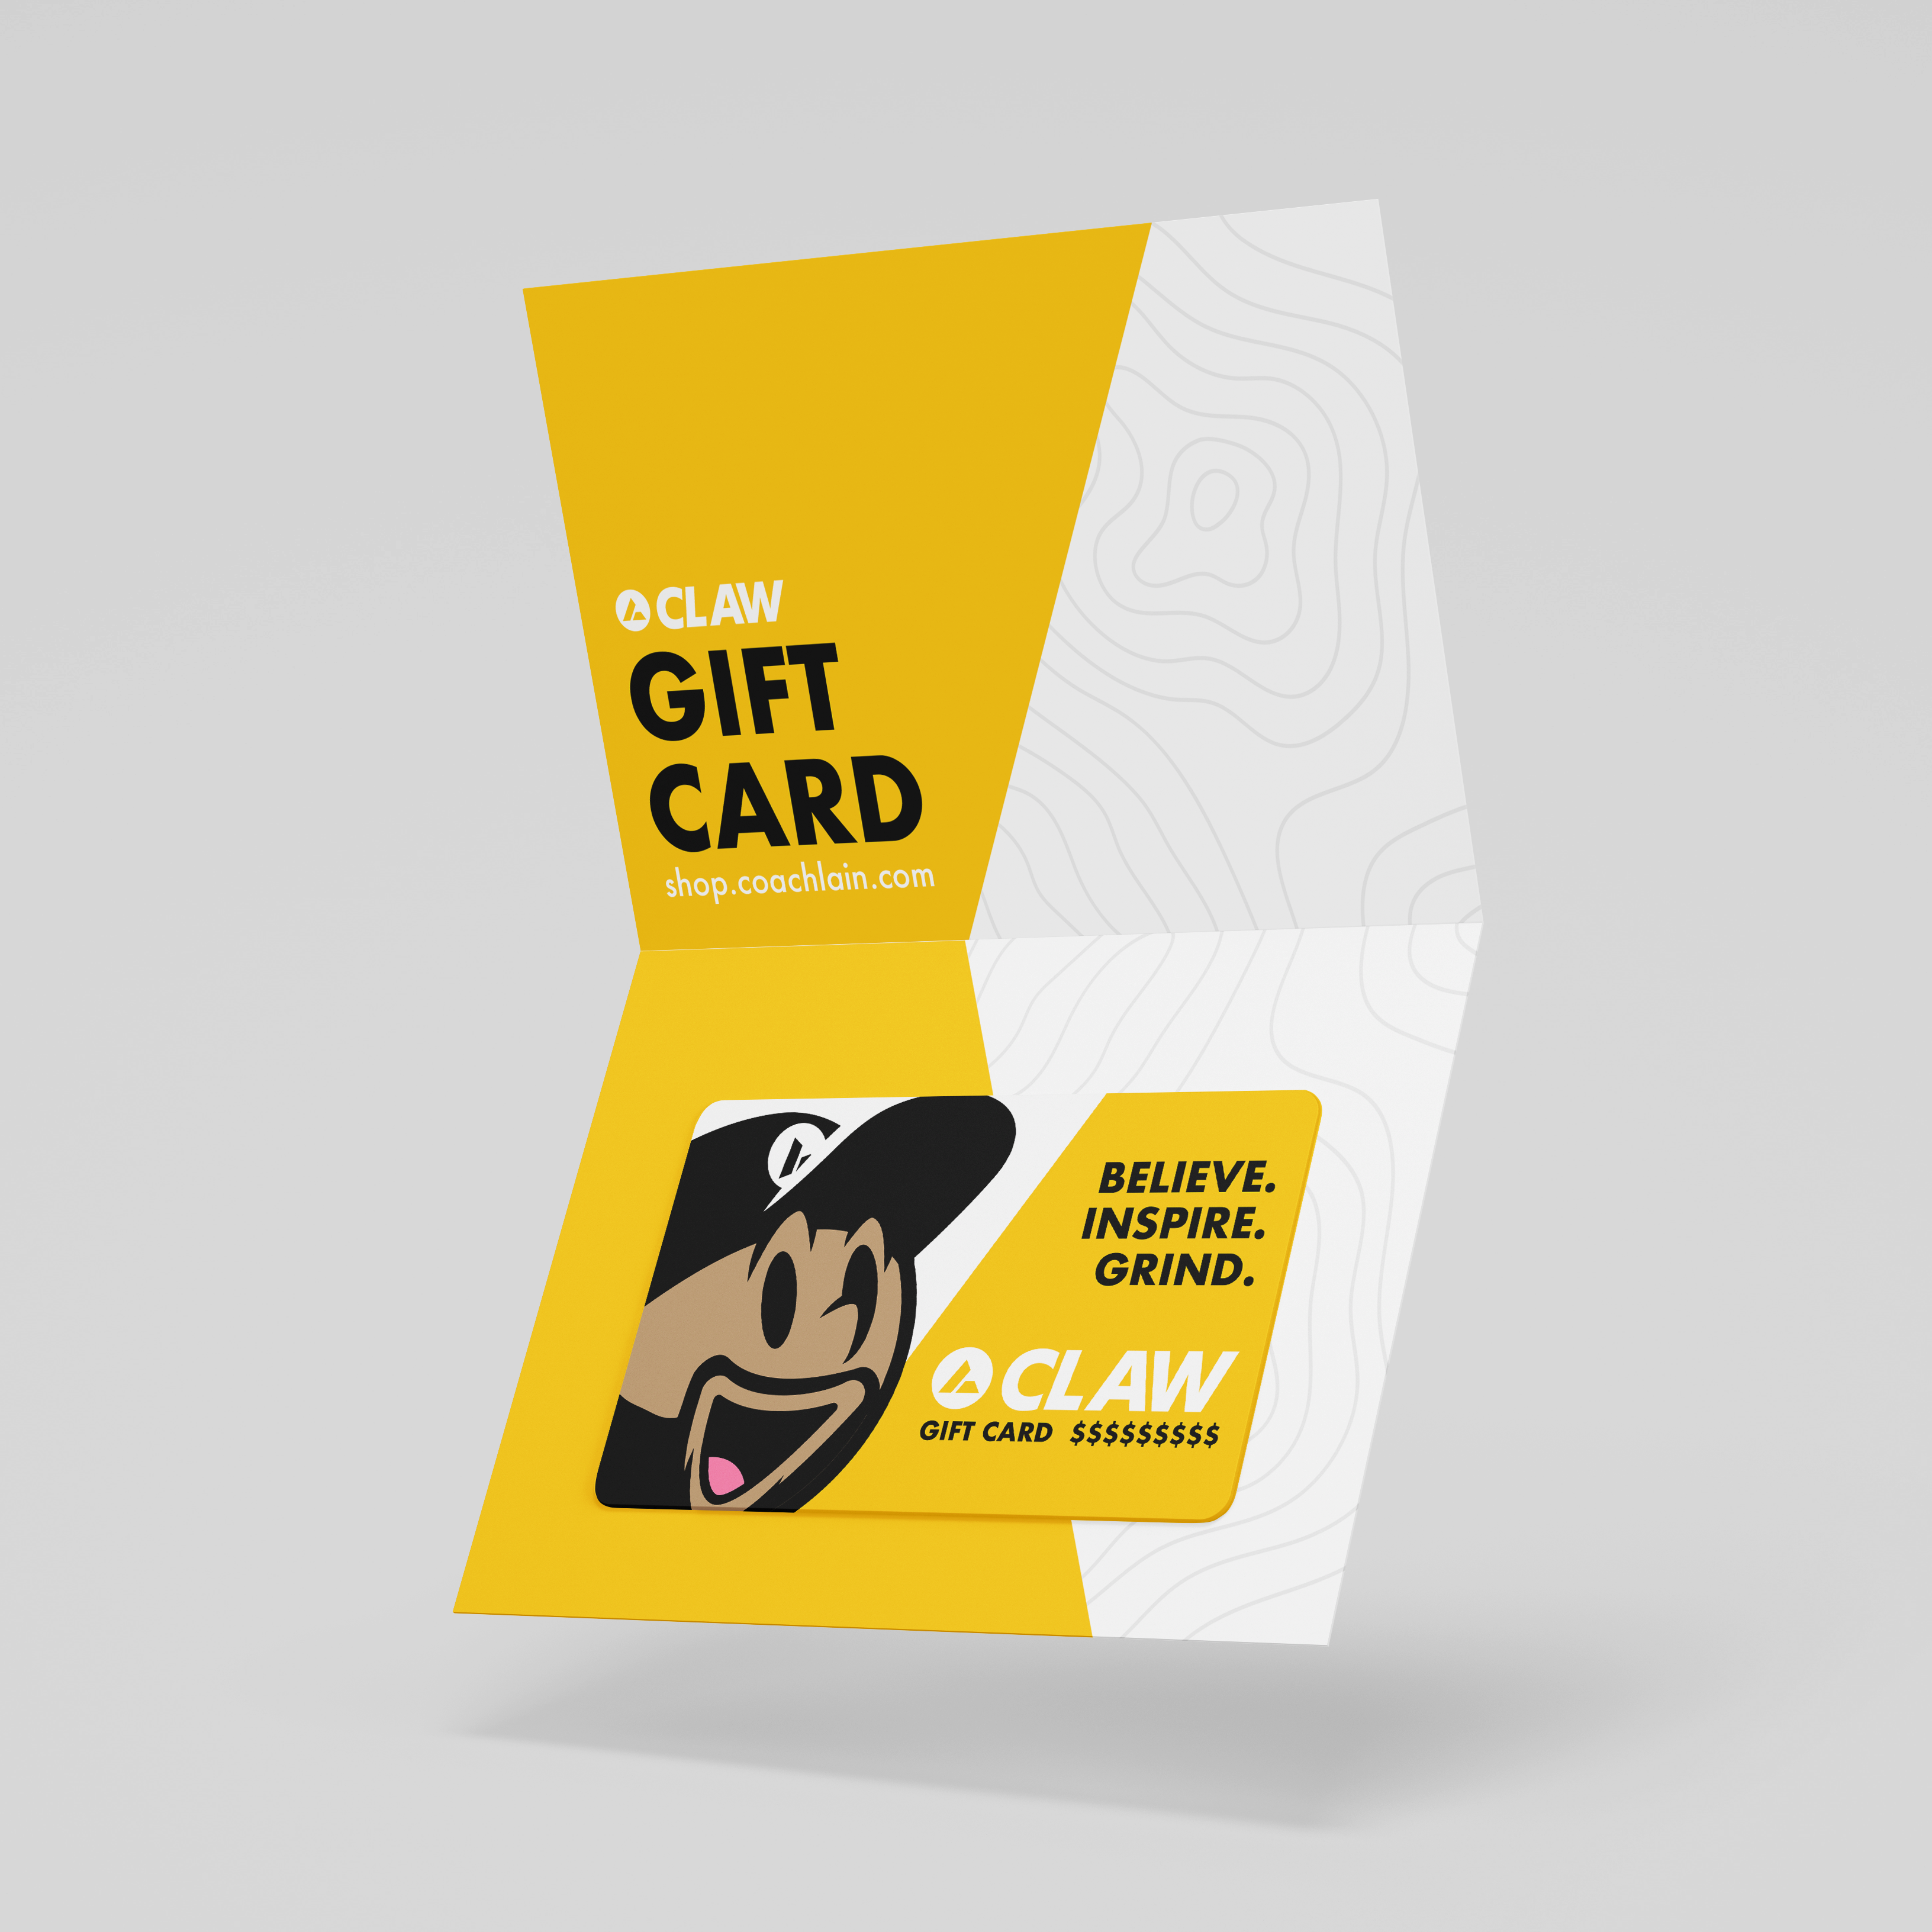 CLAW™ Gift Cards